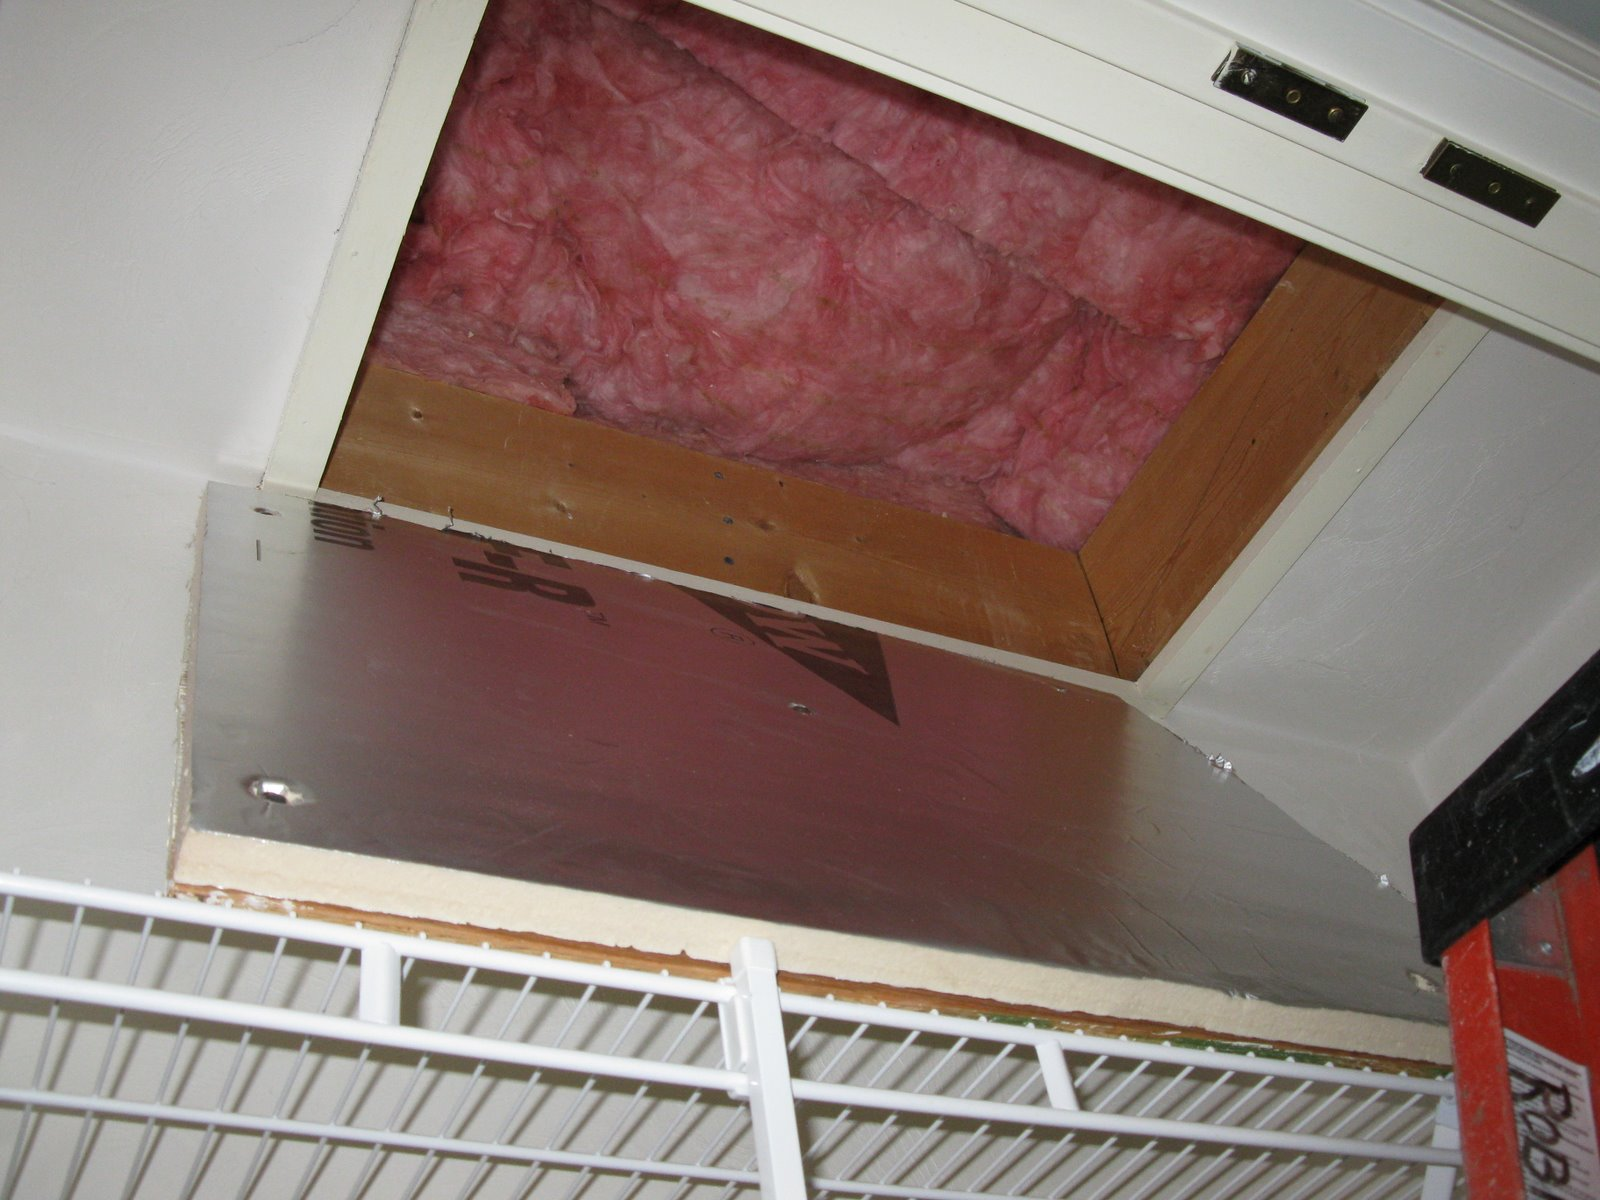 & How To Insulate An Attic Hatch